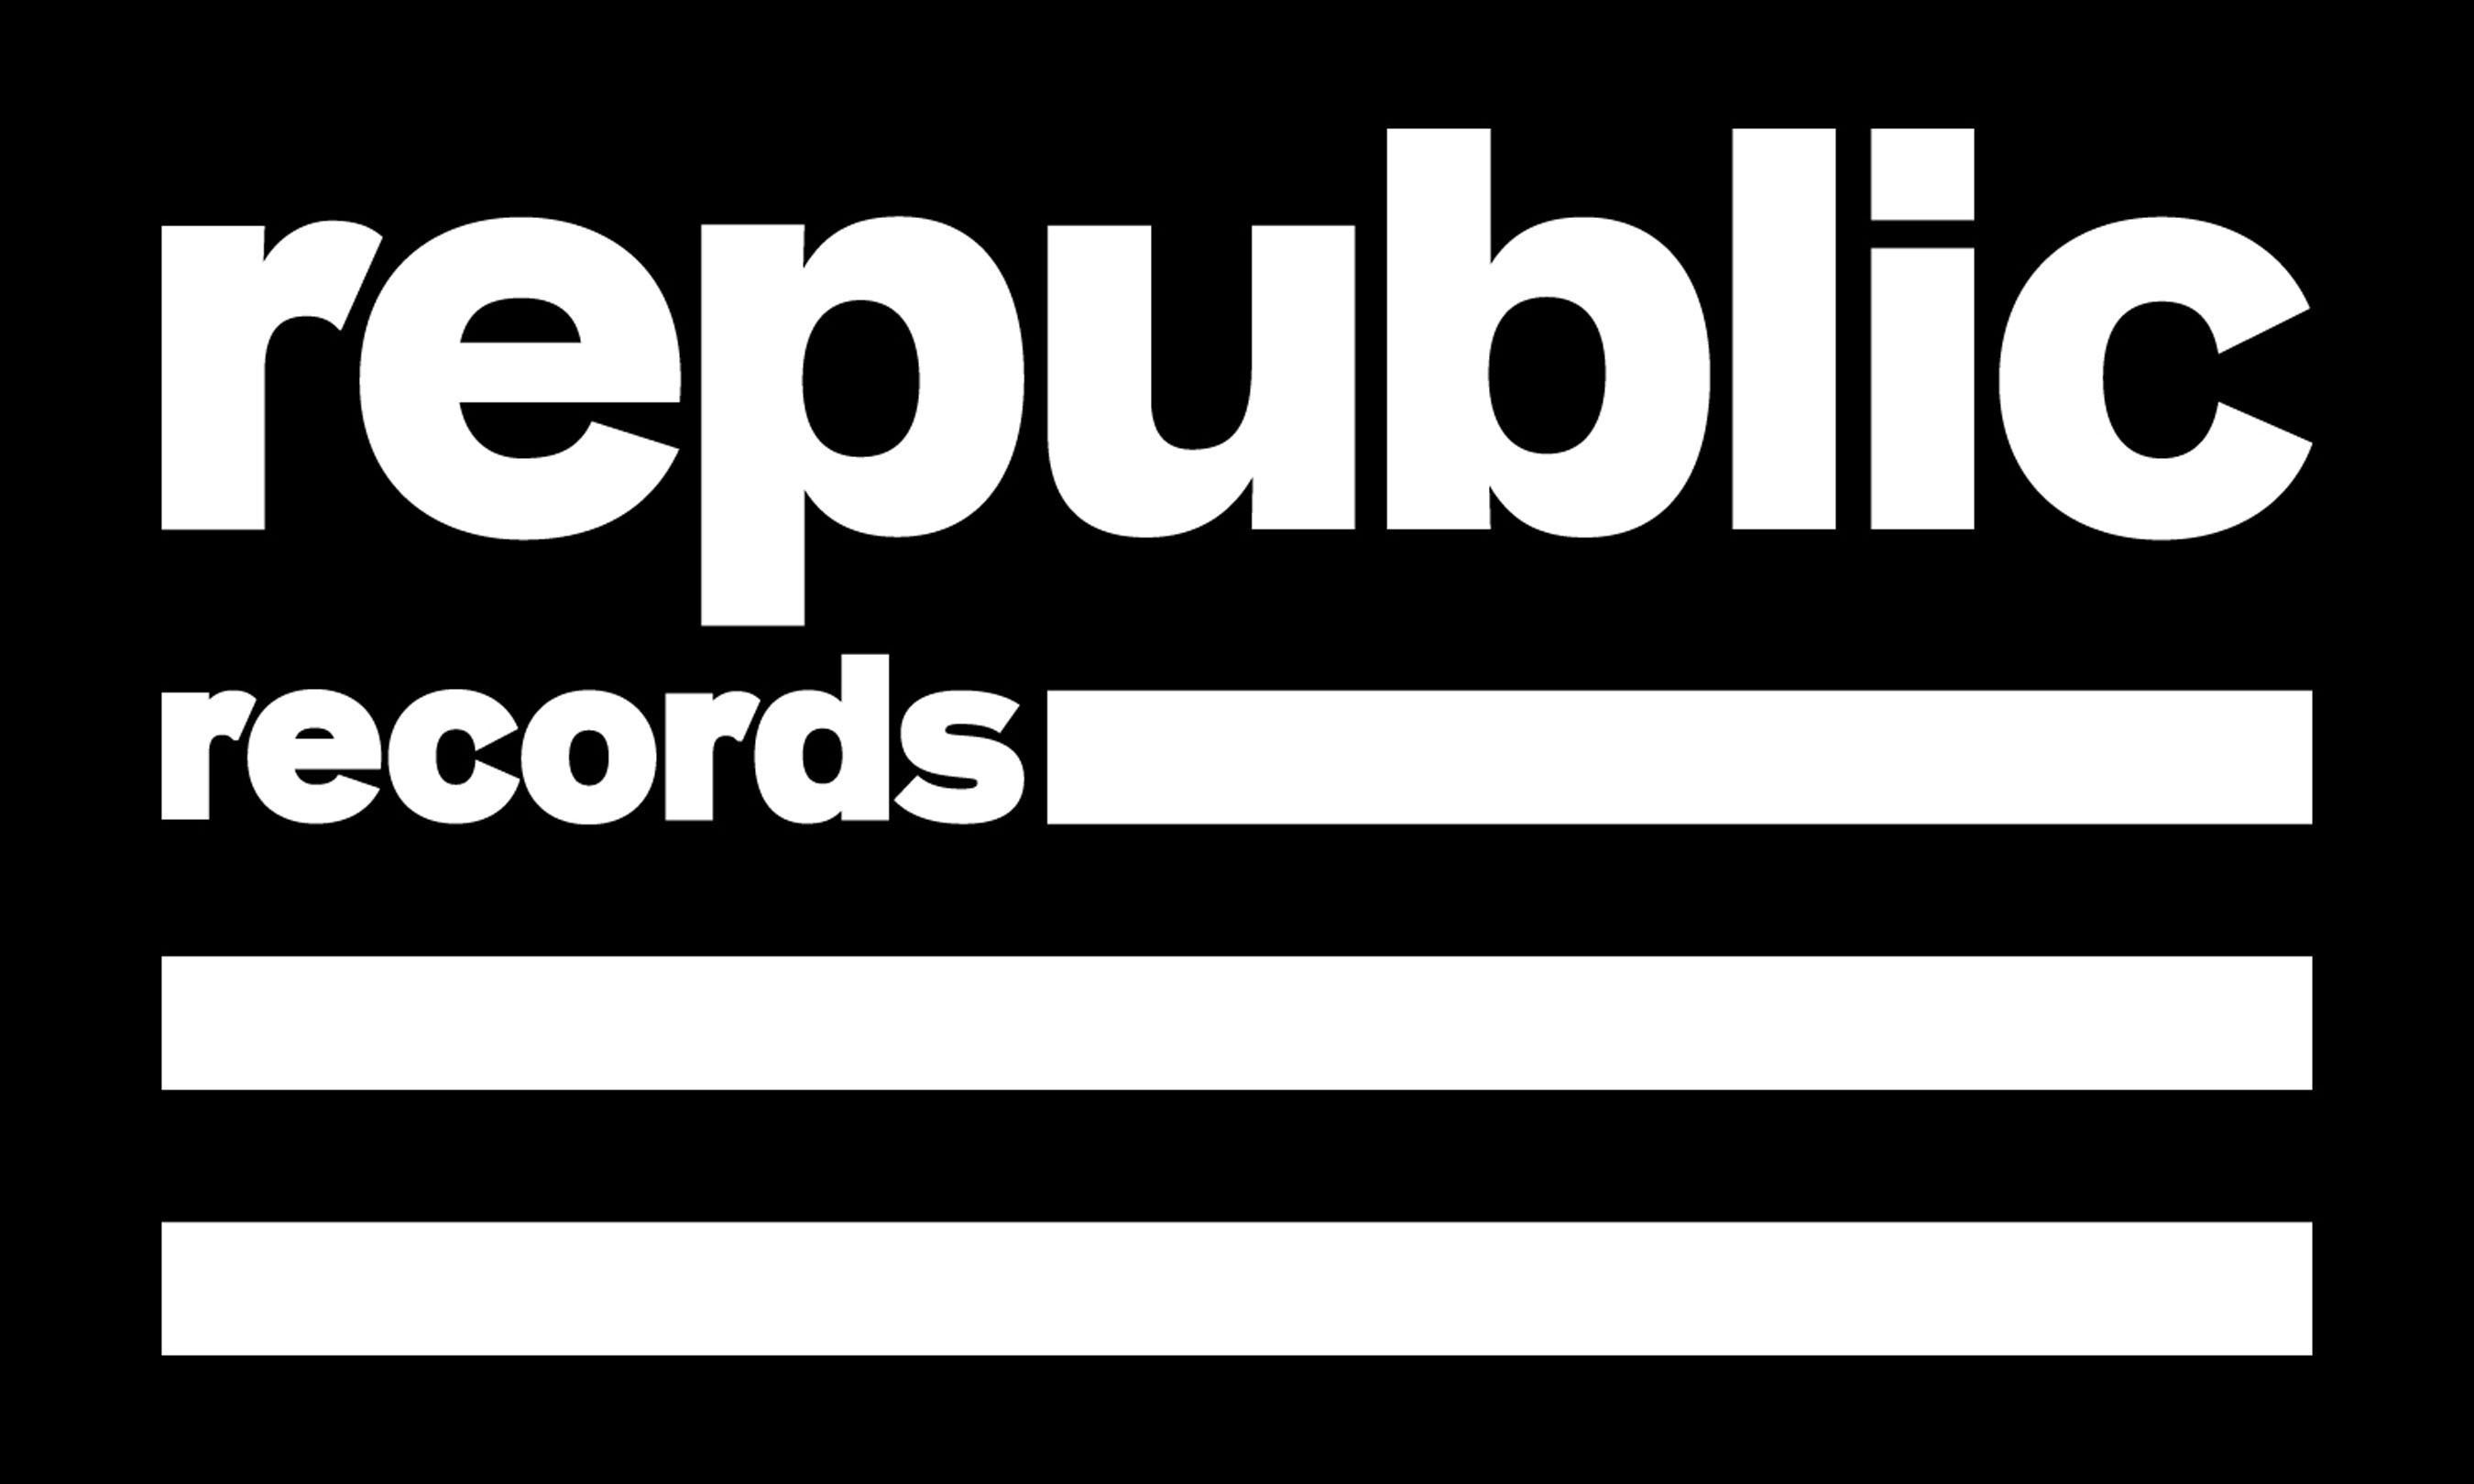 Republic Records.